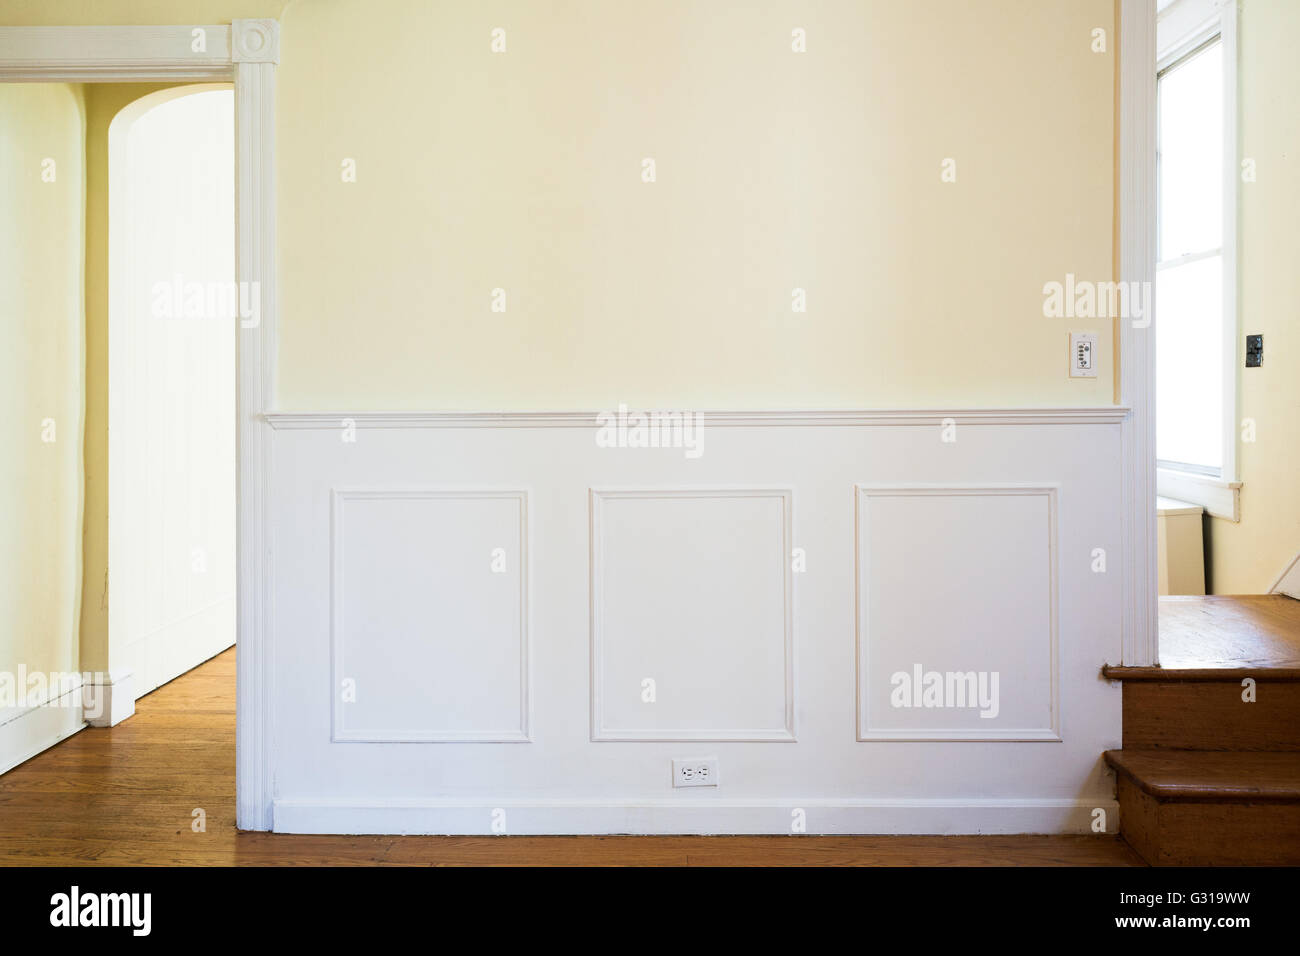 A wall with traditional paneled wainscoting and door molding in an elegant 1920s American townhome dining room. & A wall with traditional paneled wainscoting and door molding in an ...